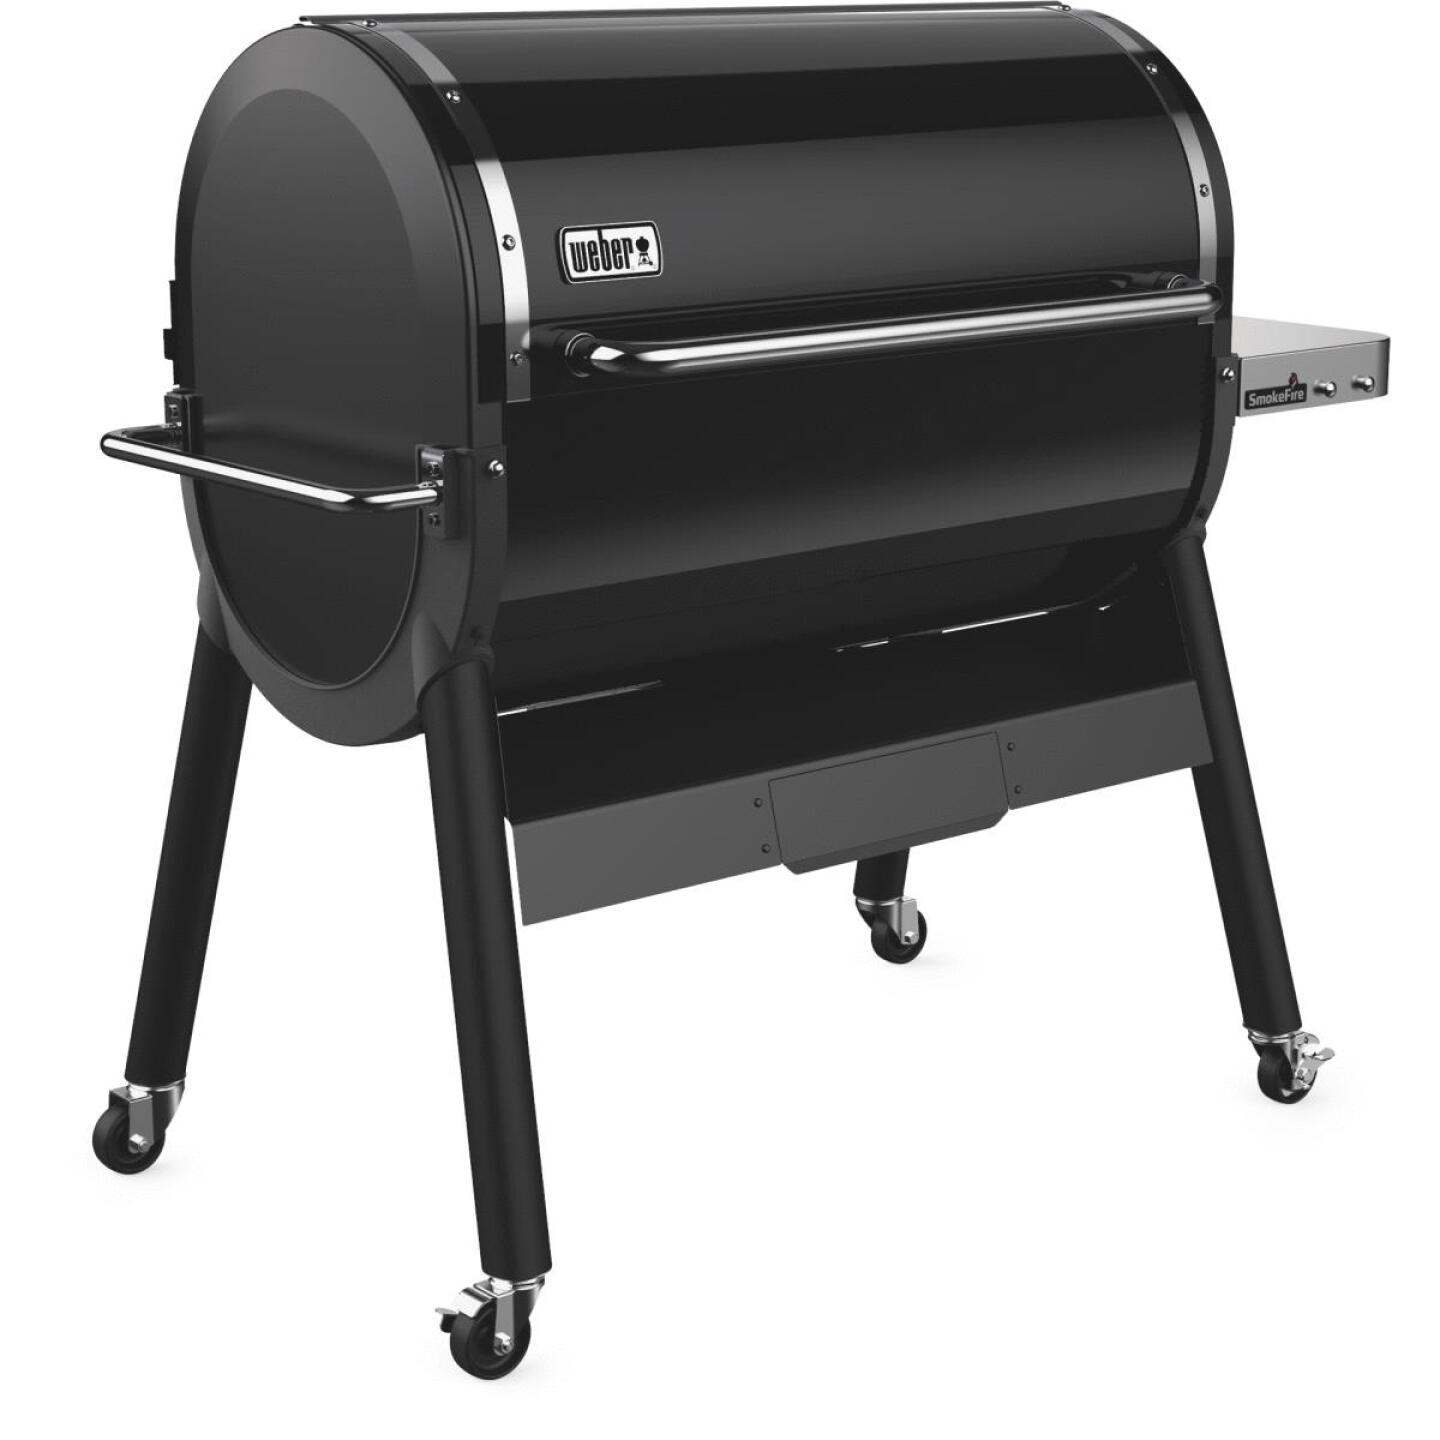 Weber SmokeFire EX6 Black 1008 Sq. In. Wood Pellet Grill Image 2